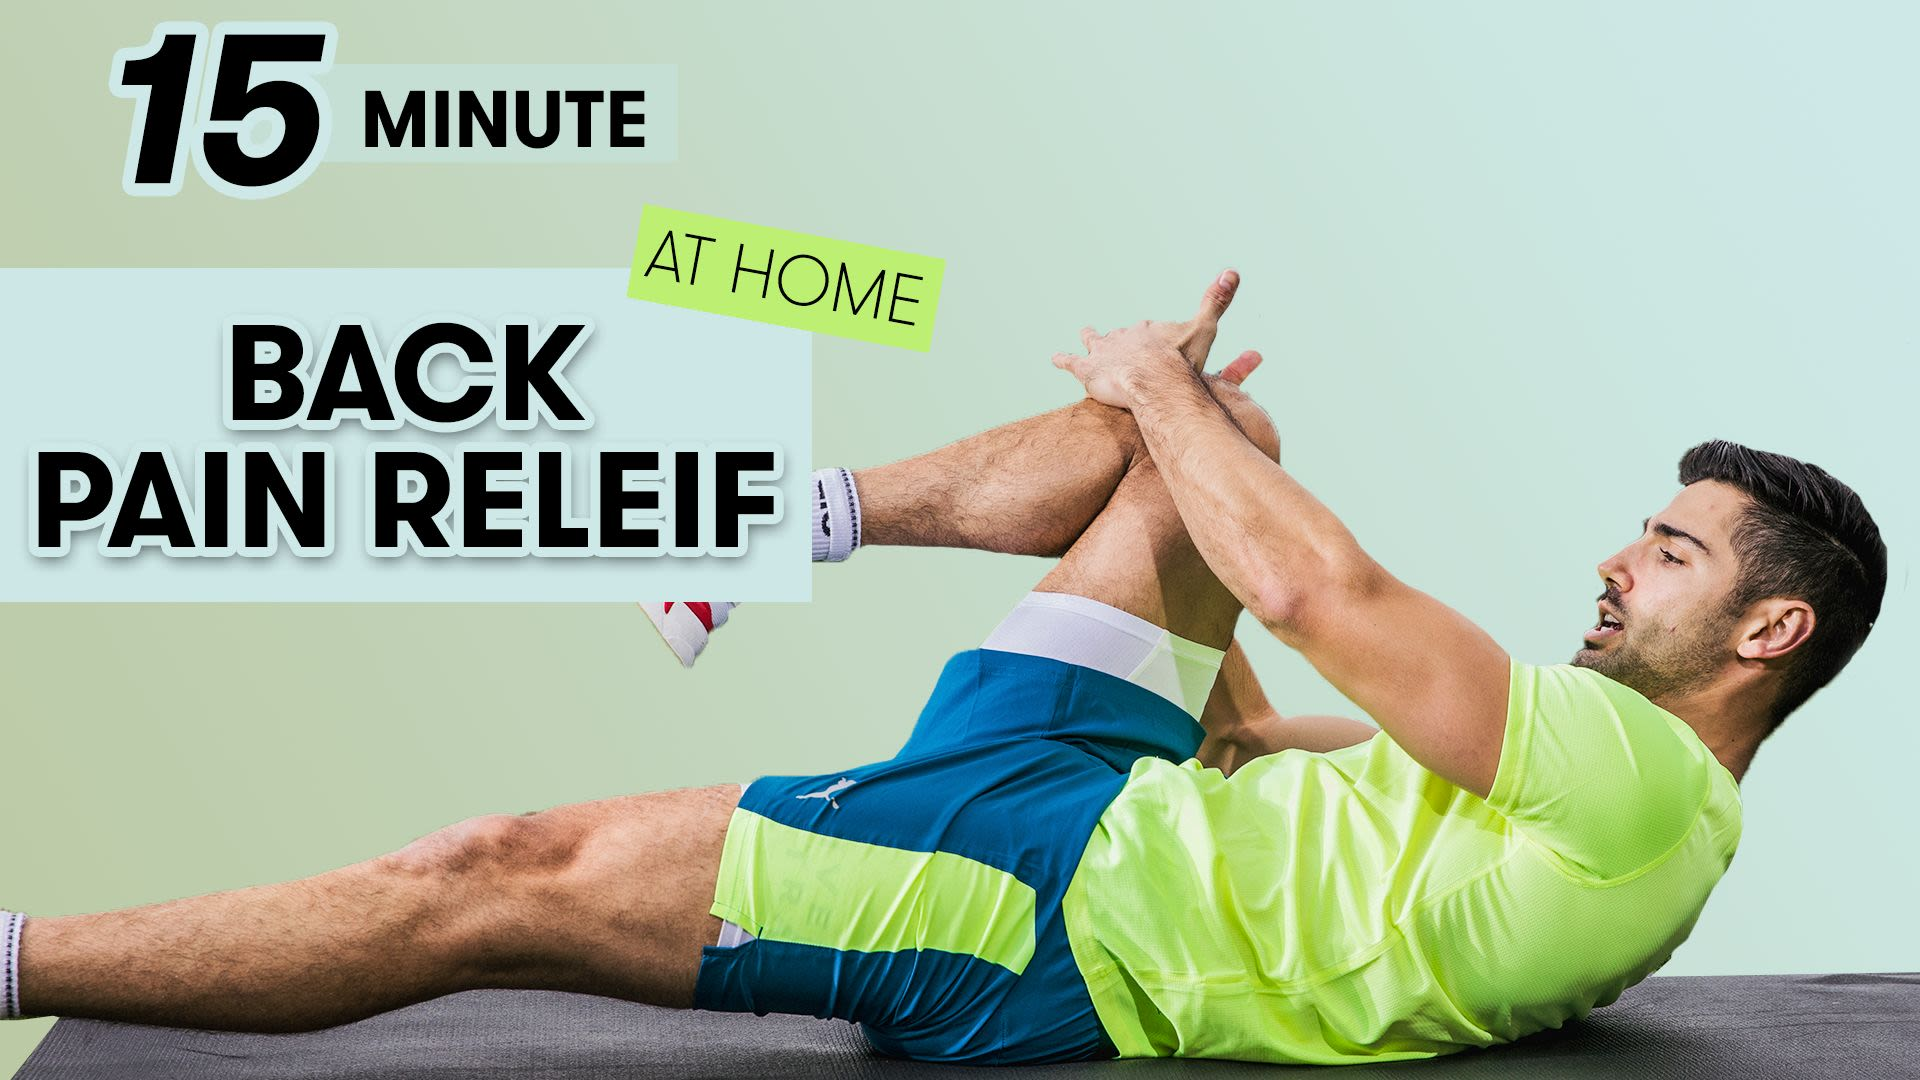 Watch 20 Minute Back Pain Relief Workout   20 Exercises At Home ...